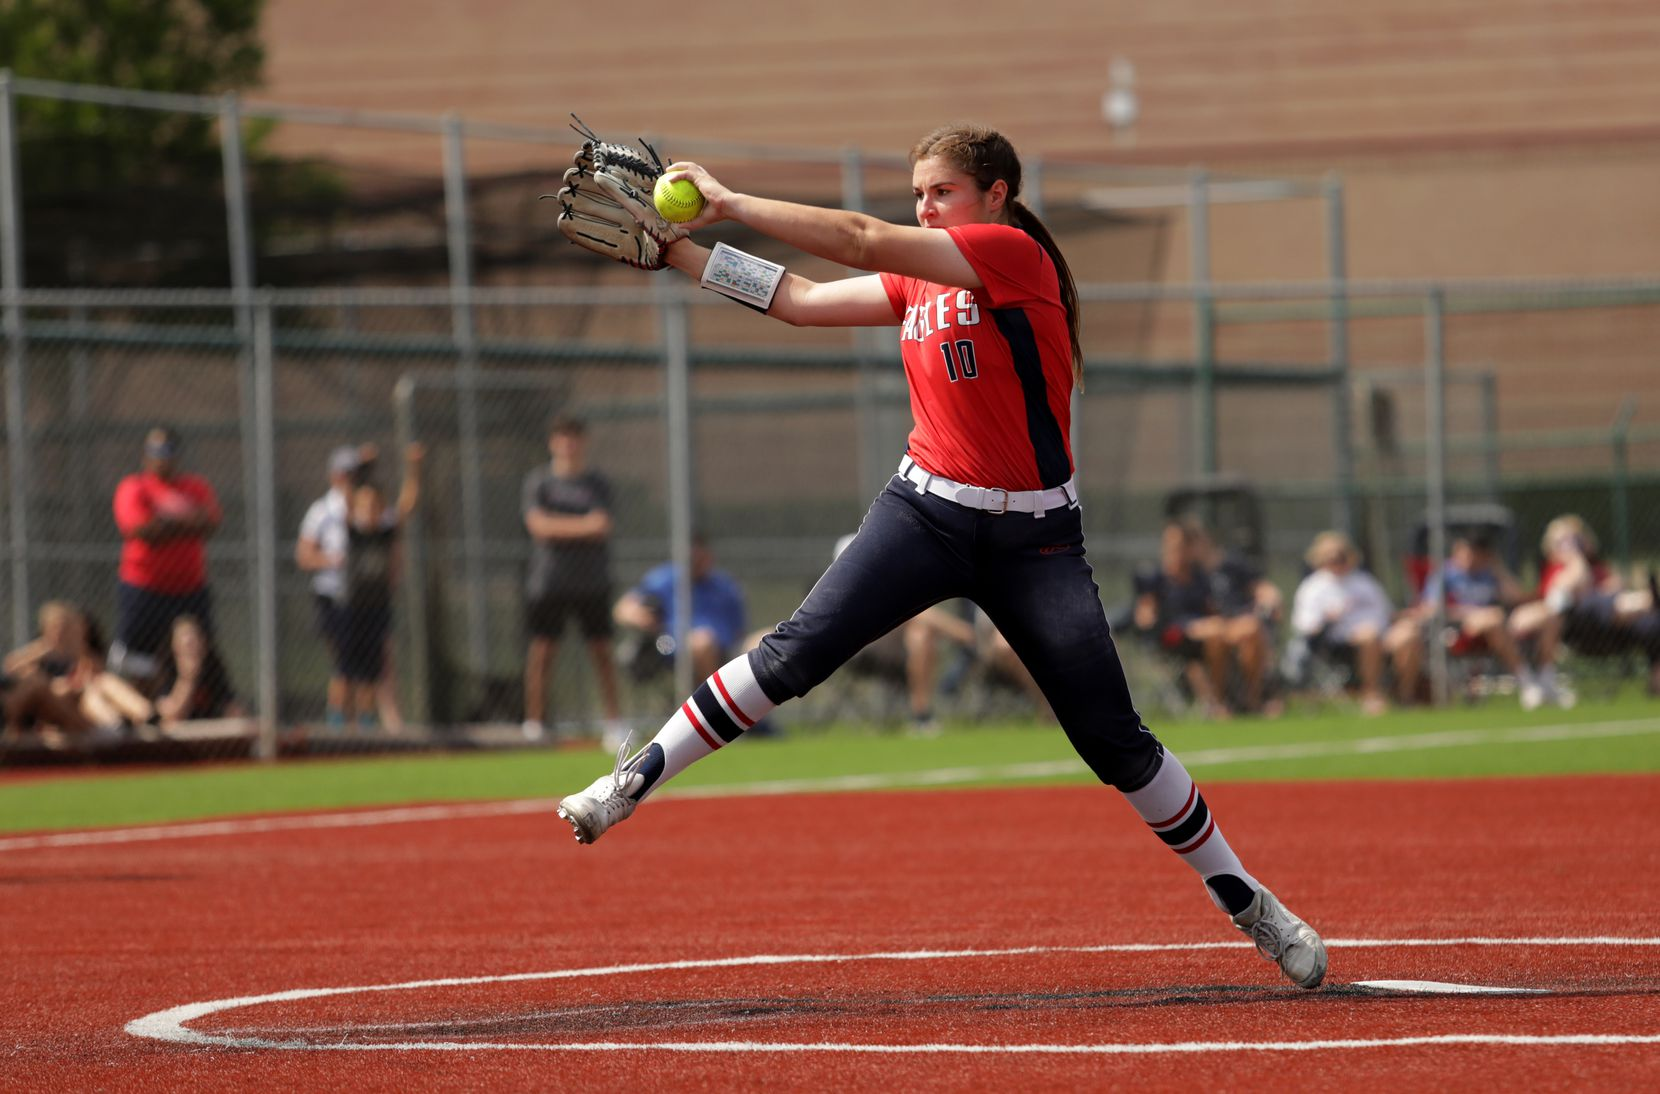 Allen High School player #10, Alexis Telford, pitches against Flower Mound High School during a softball game at Allen High School in Allen, TX, on May 15, 2021. (Jason Janik/Special Contributor)